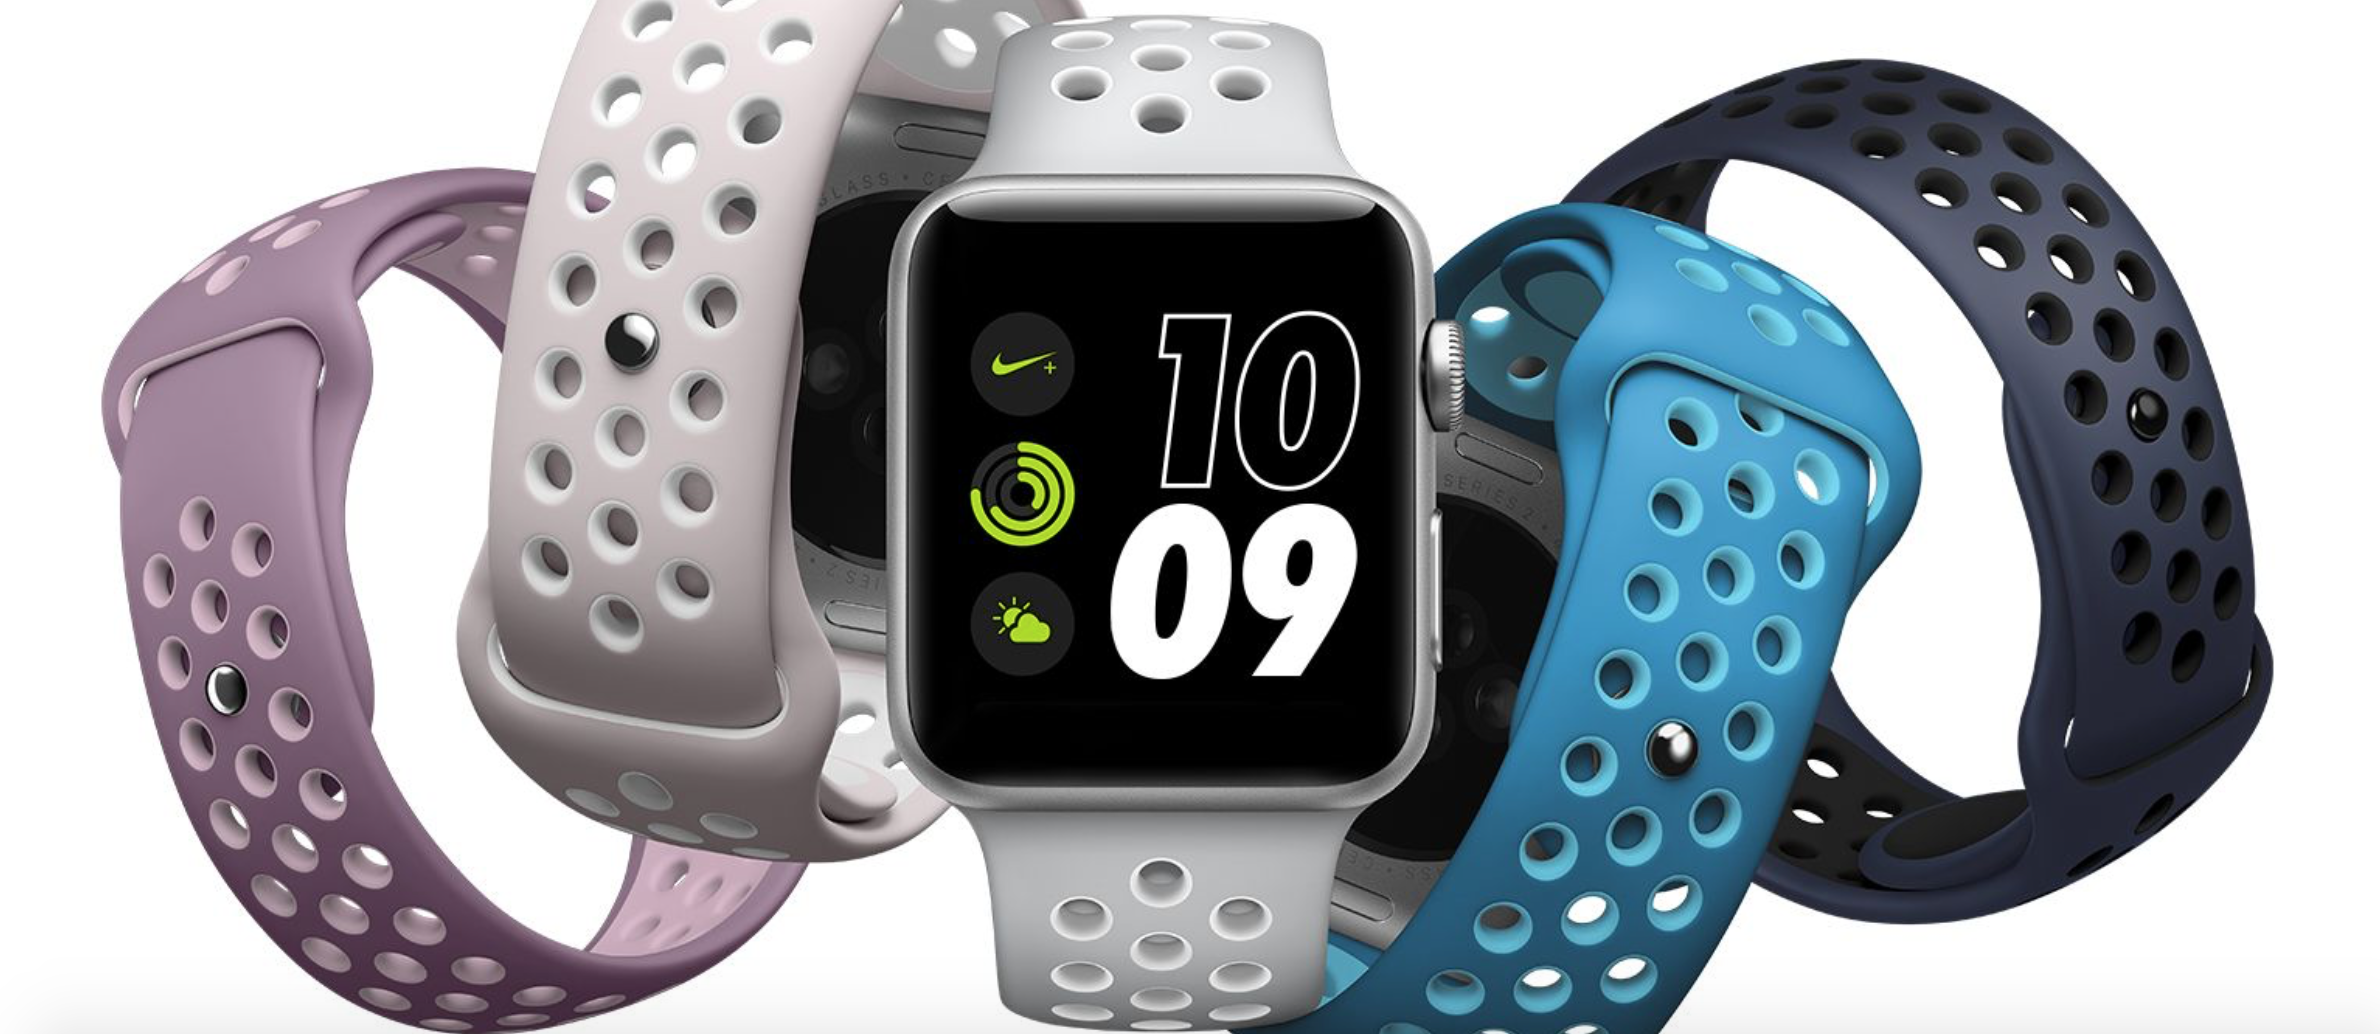 ba684e0609 Nike's New Day to Night Apple Watch Band Collection is Now on Sale ...